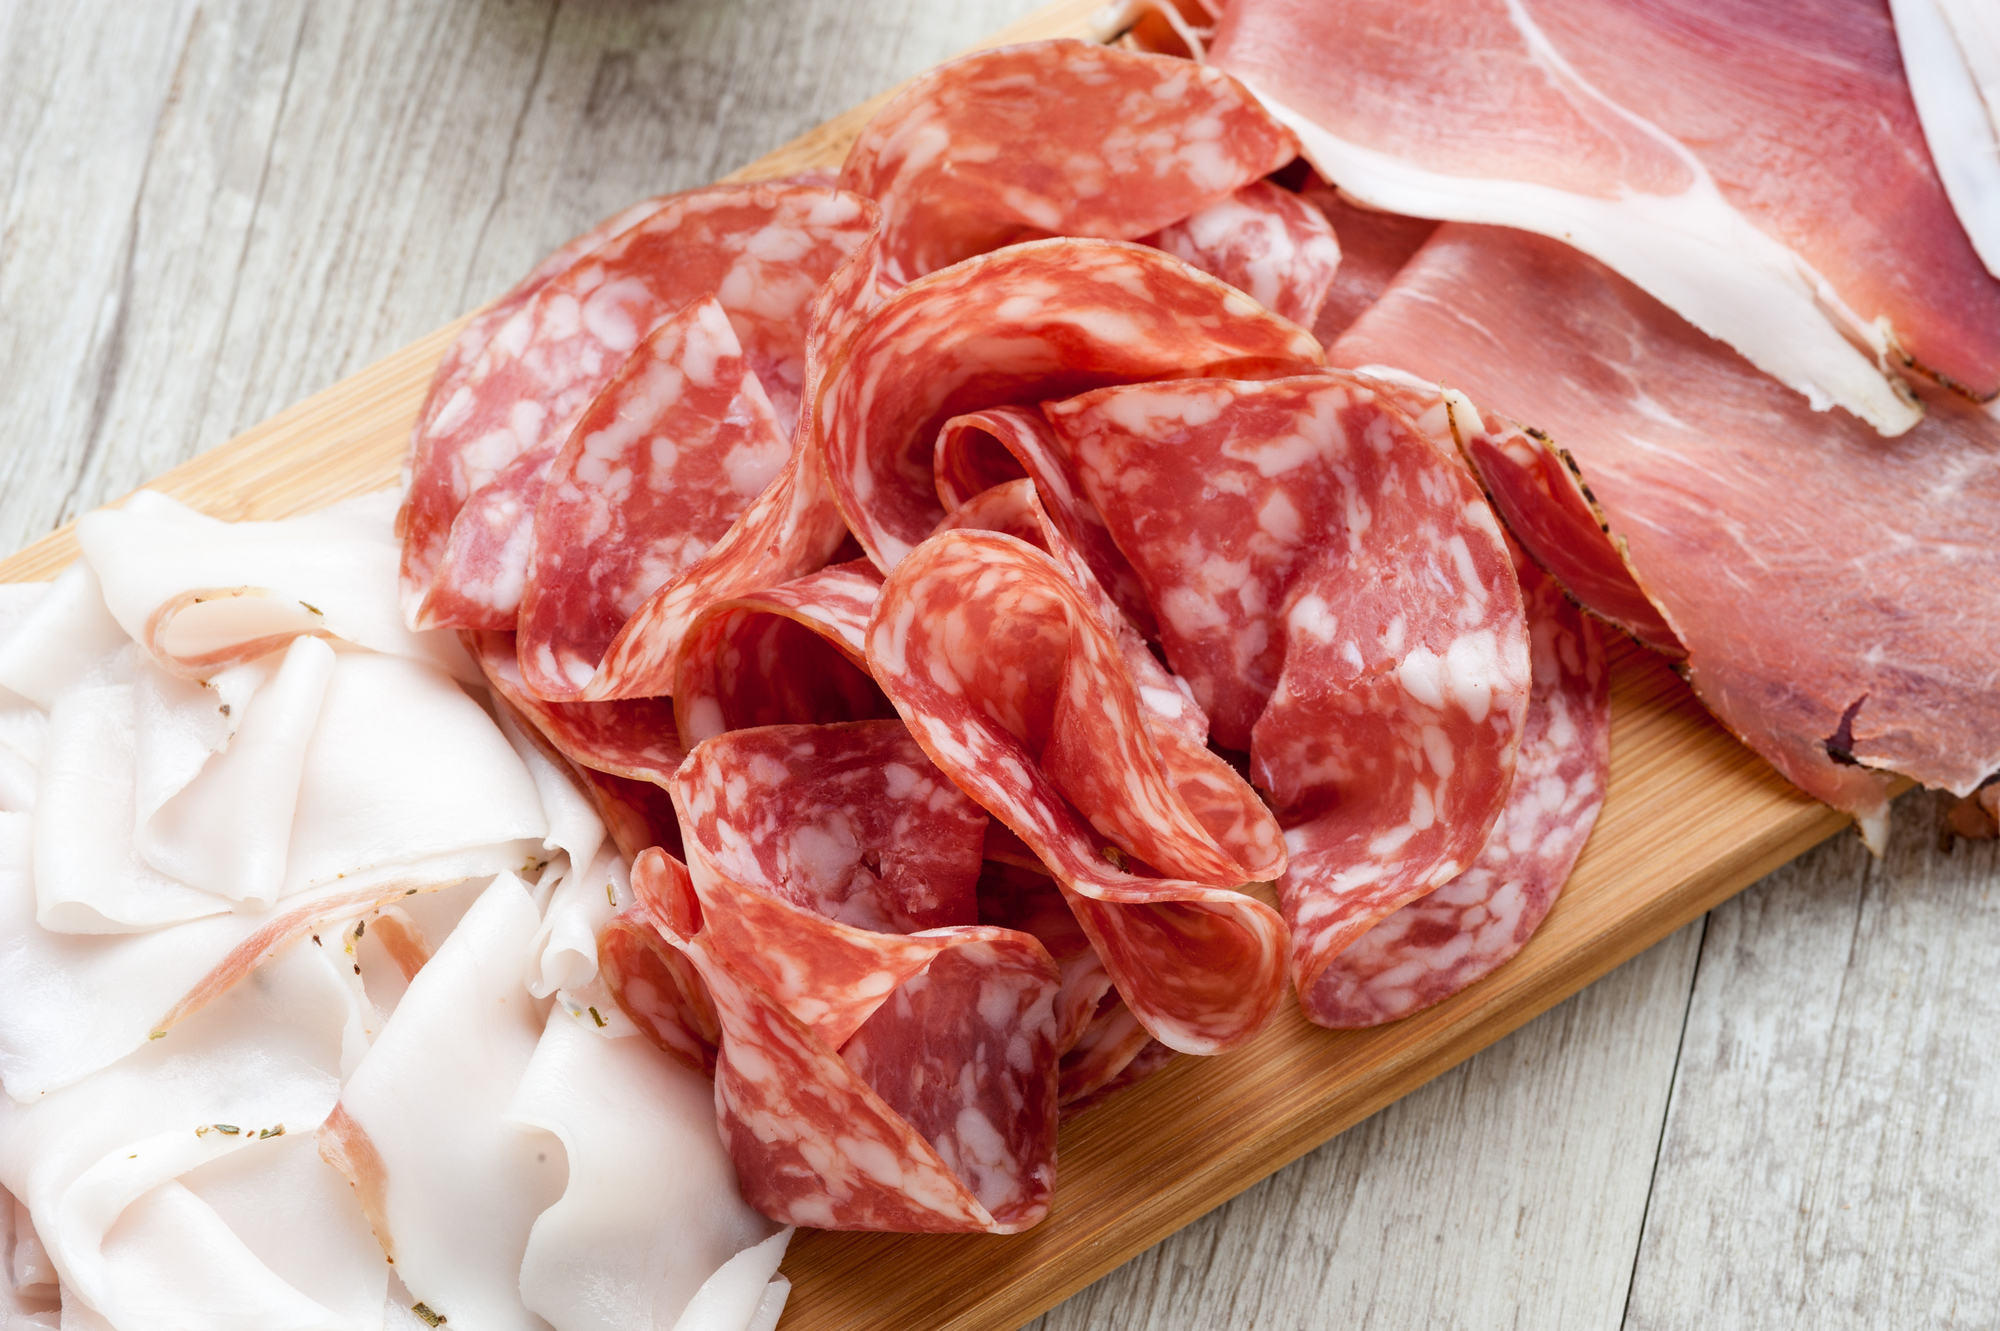 food poisoning from cold meats